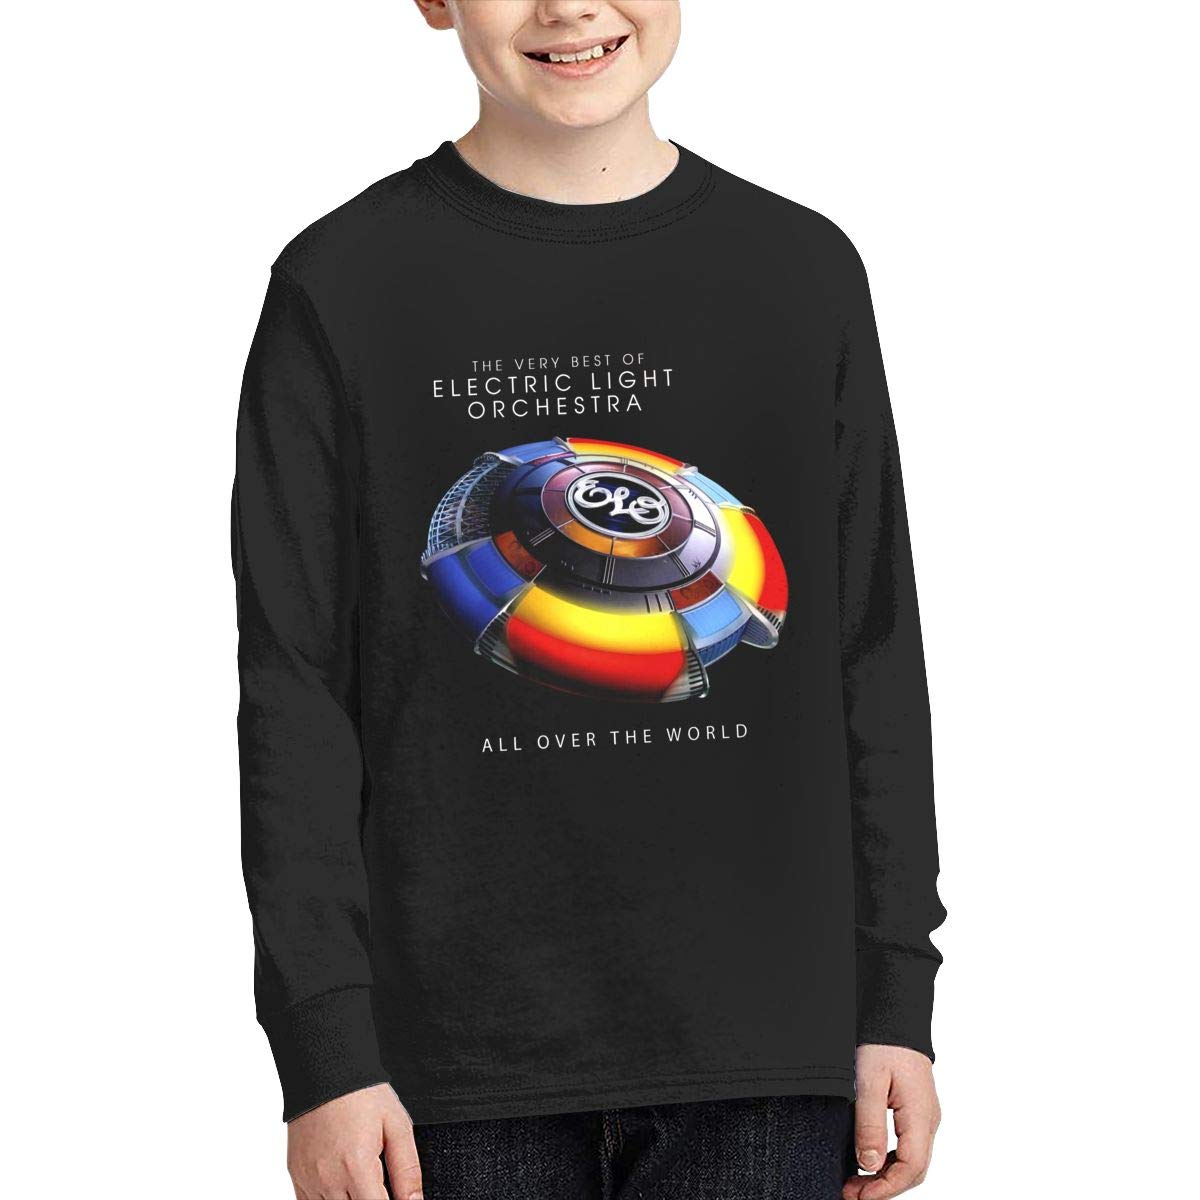 Onlybabycare Electric-Light Orchestra Big Boys Wicking Pullover Sweatshirt Cute Shirt